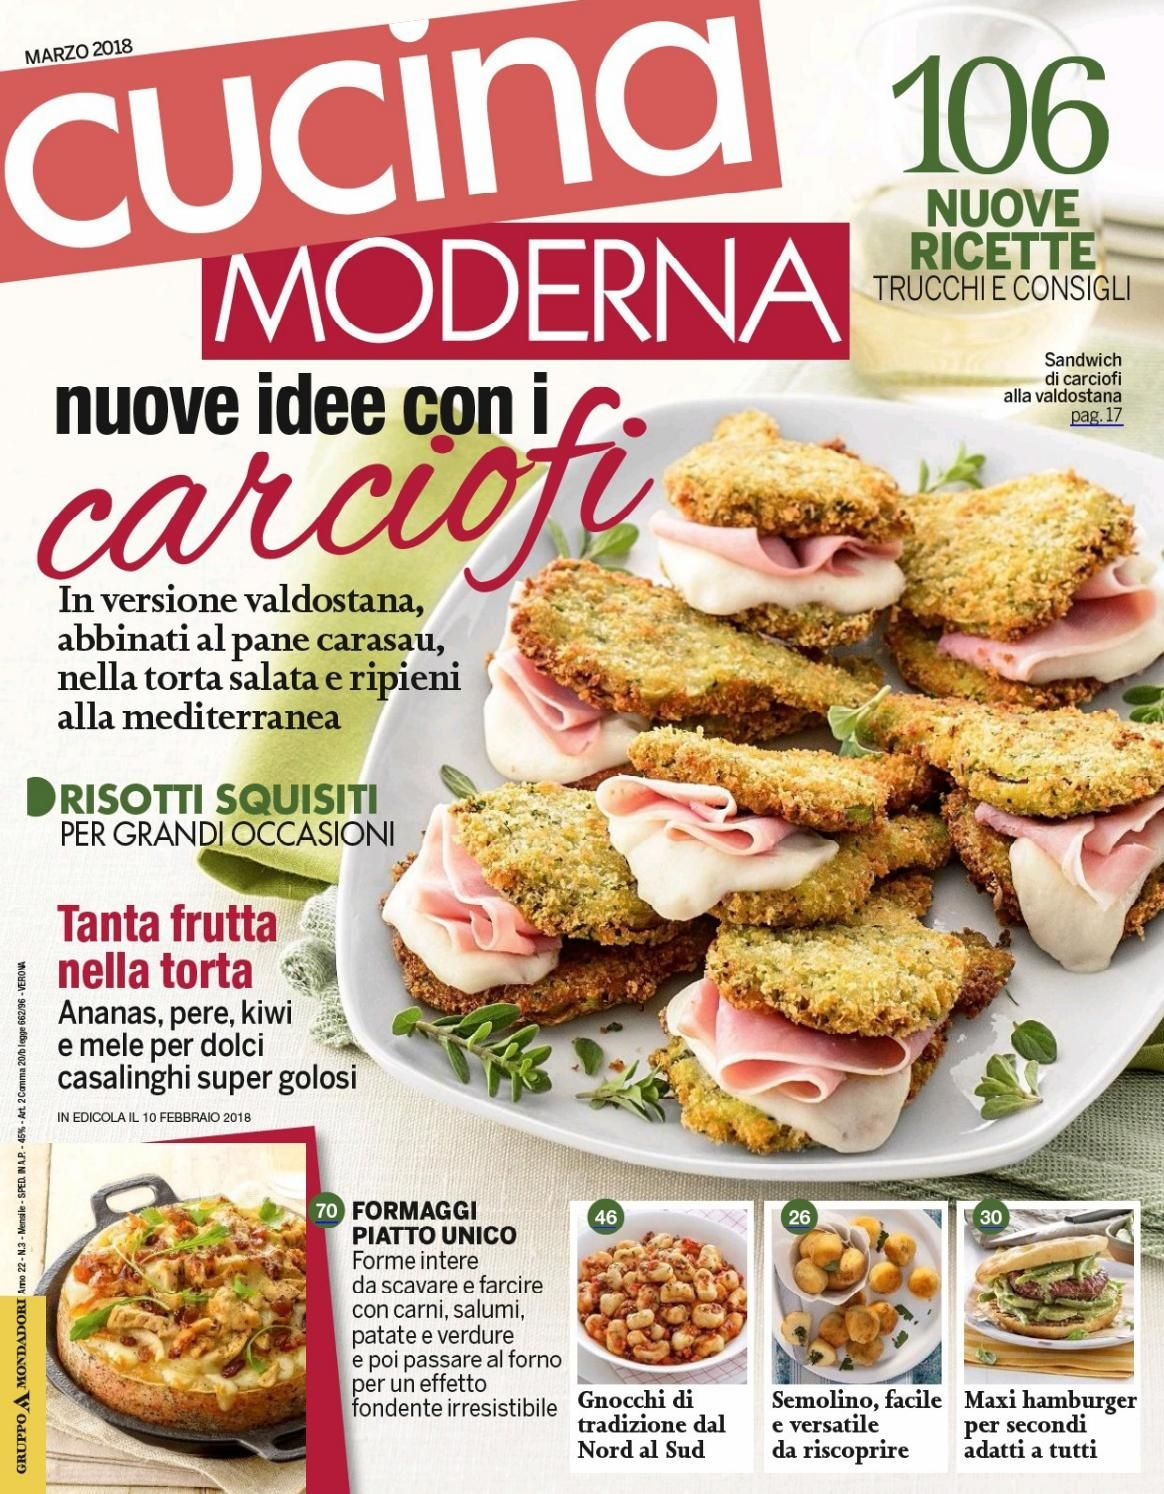 Cucina Moderna O Sale E Pepe Cucina Moderna Marzo 2018 Magazines Easy Dinner Recipes